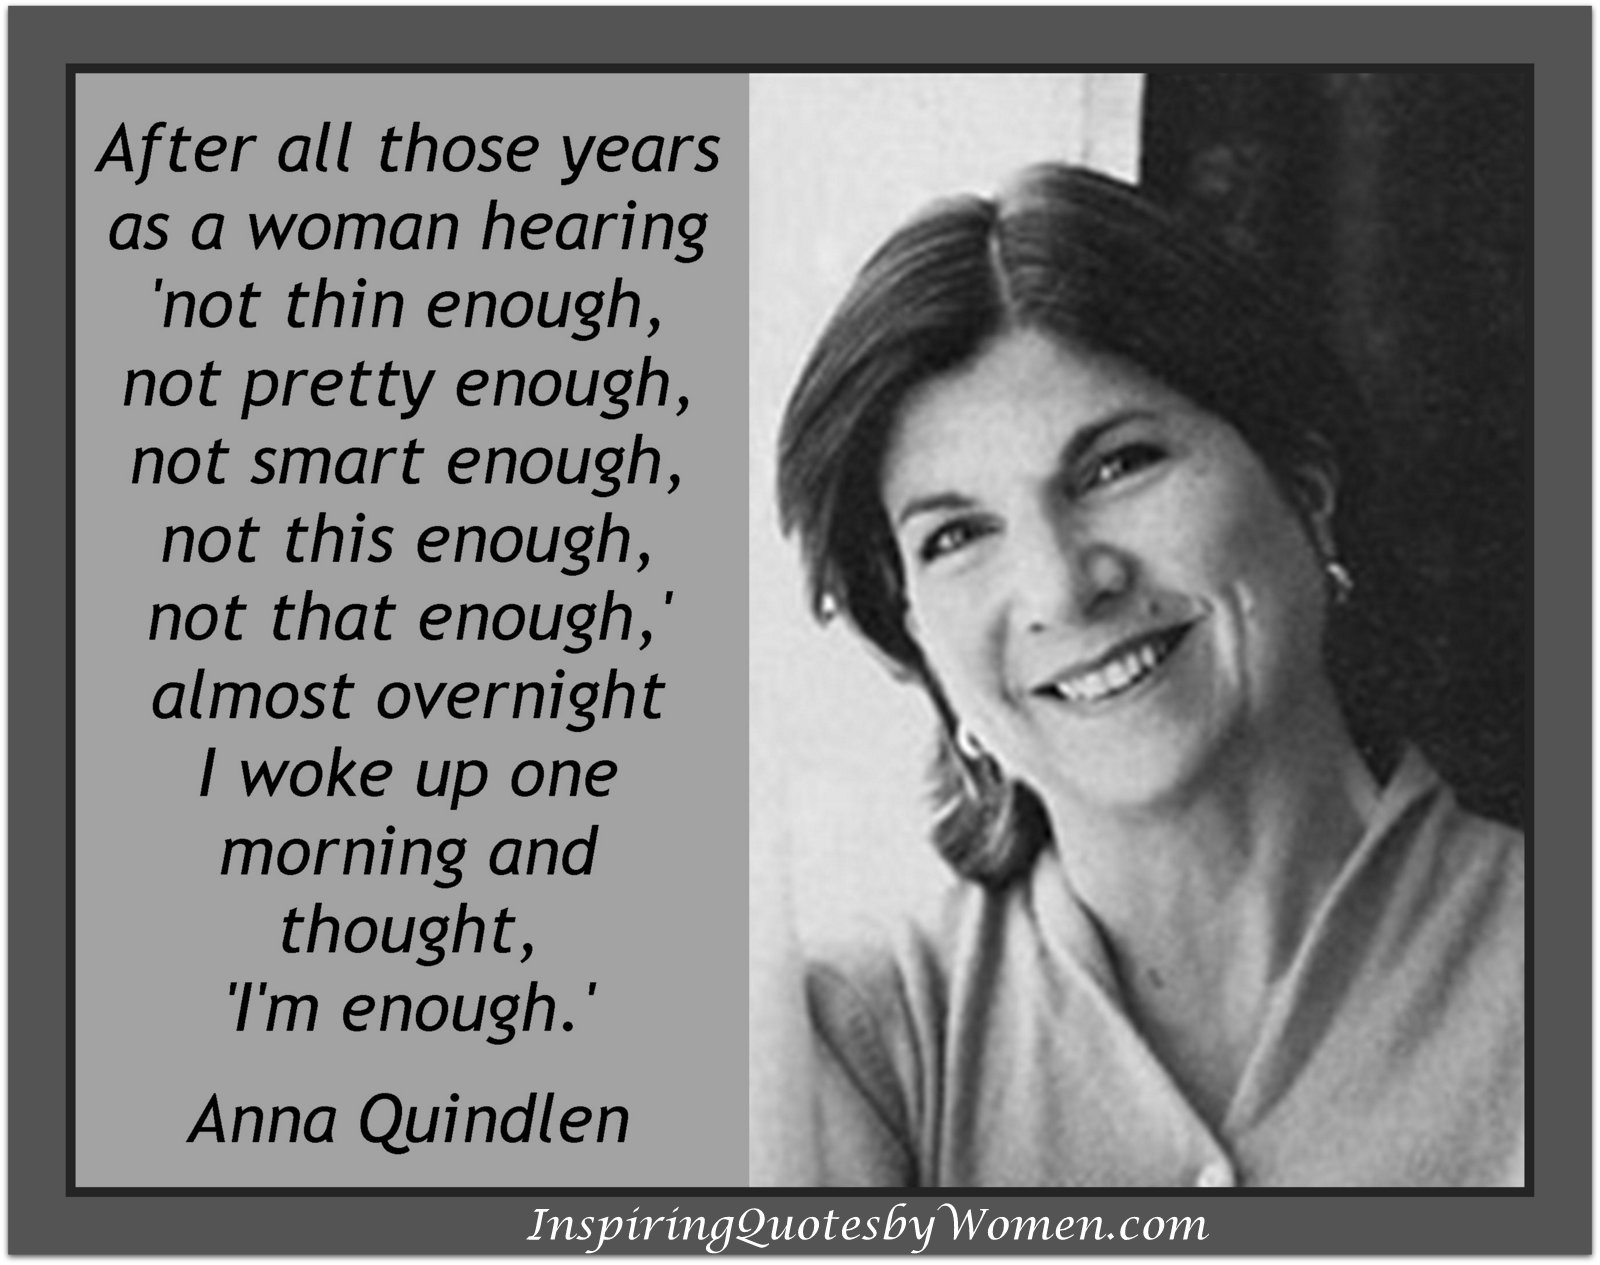 anna quindlen quotes quotesgram anna quindlen quote follow us